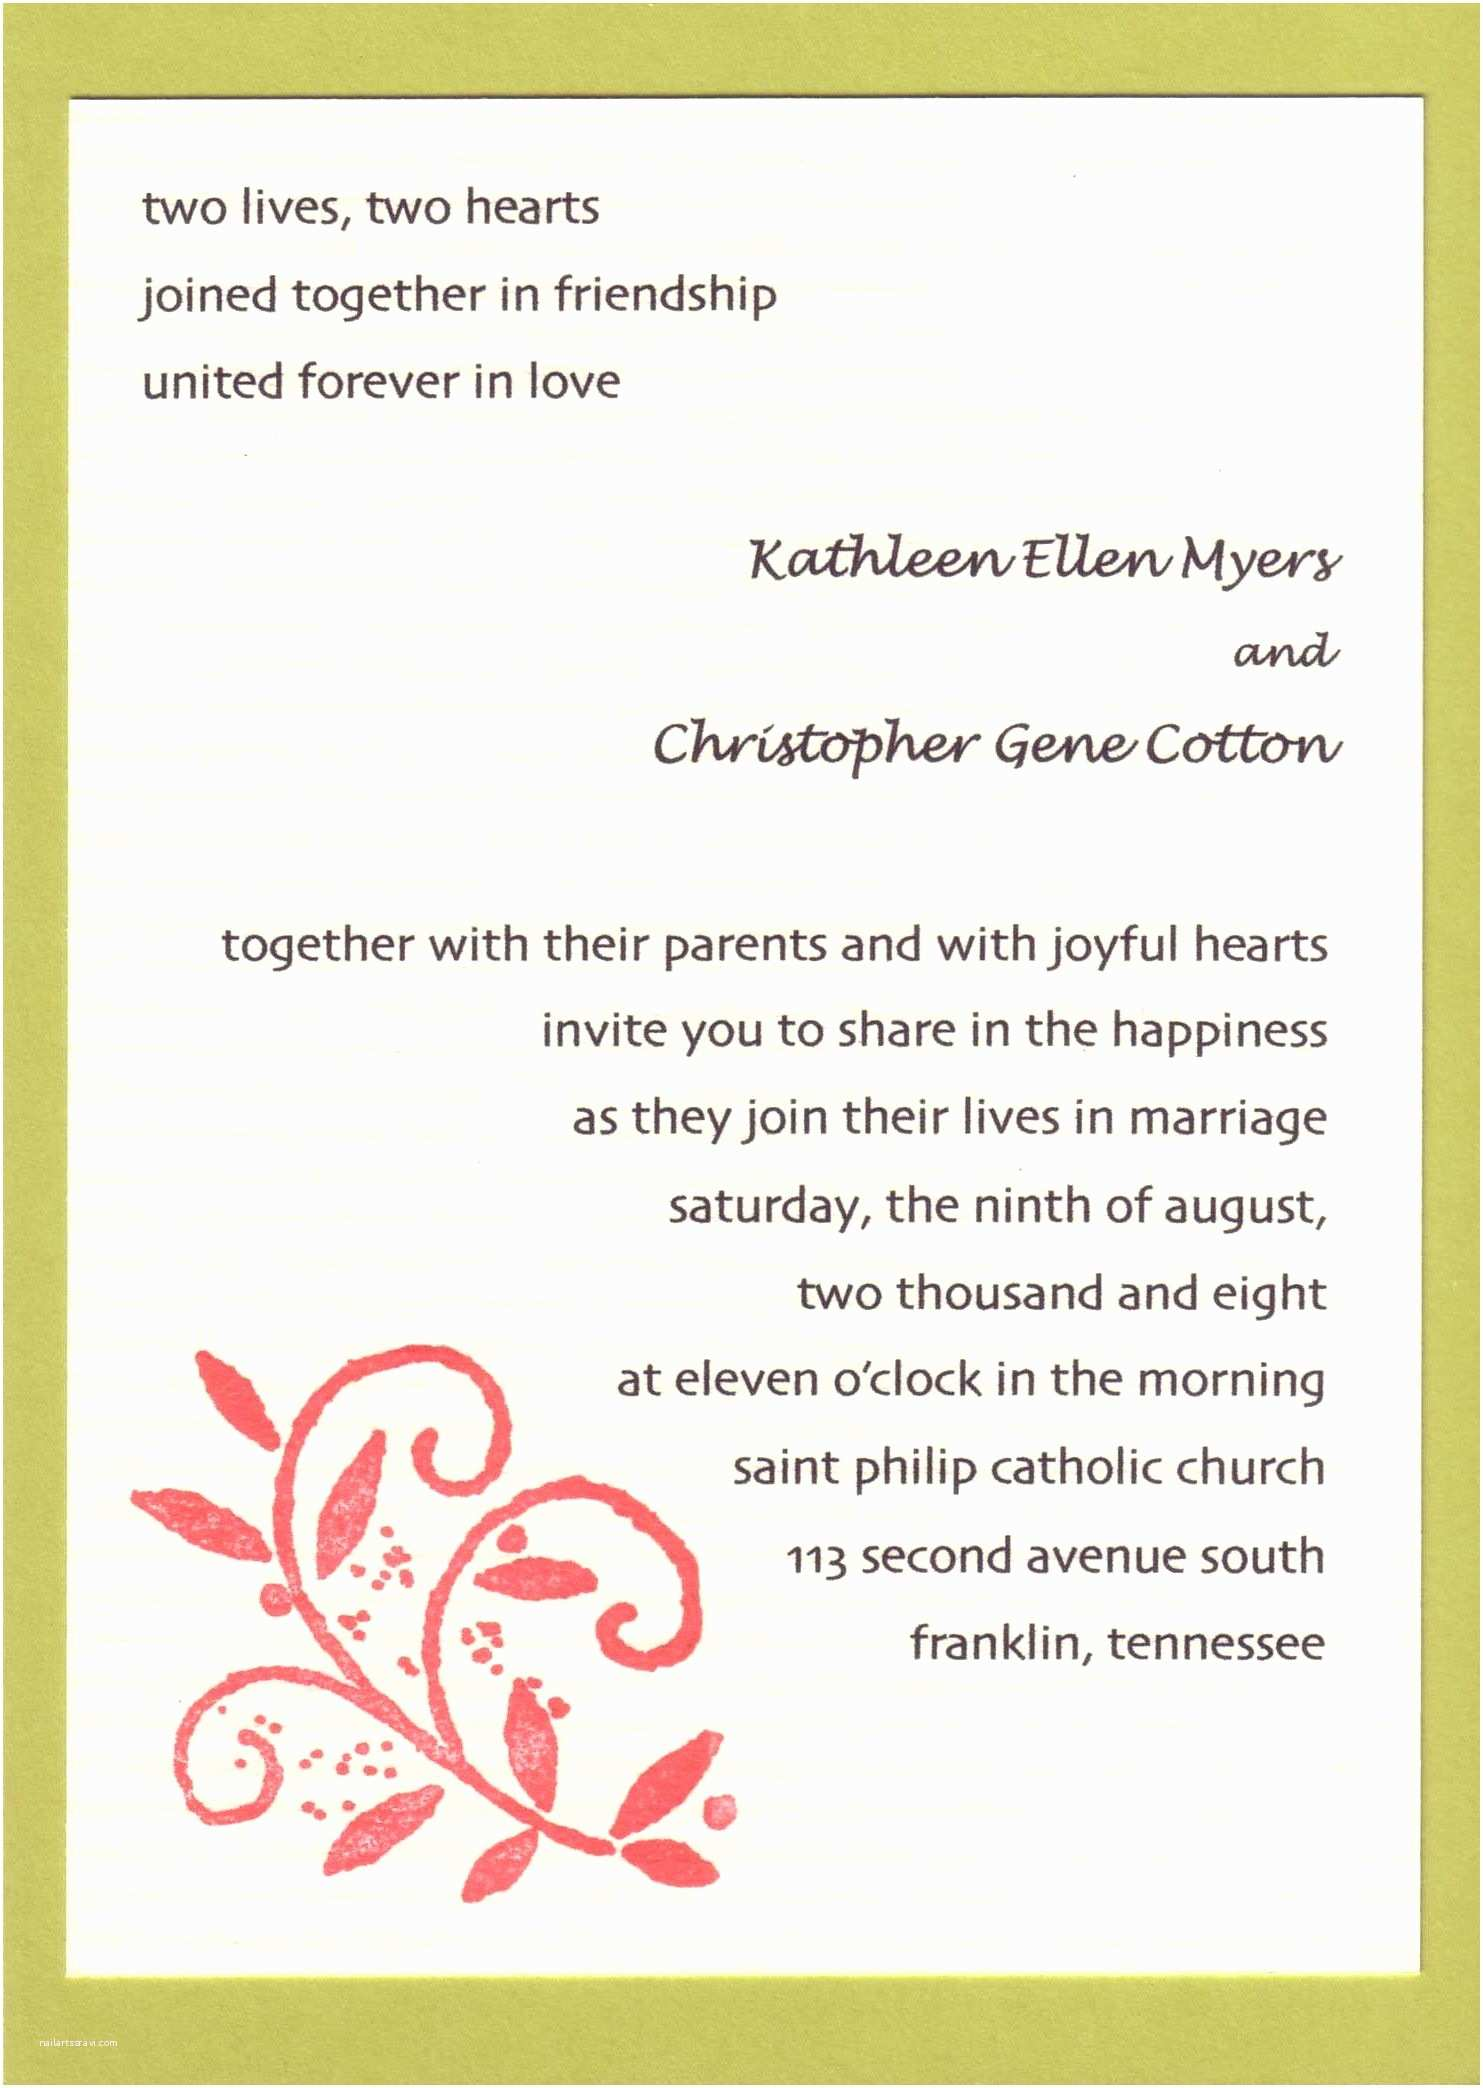 Wedding Invitation Examples Wedding Invitations Cards Wording Wedding Invitation